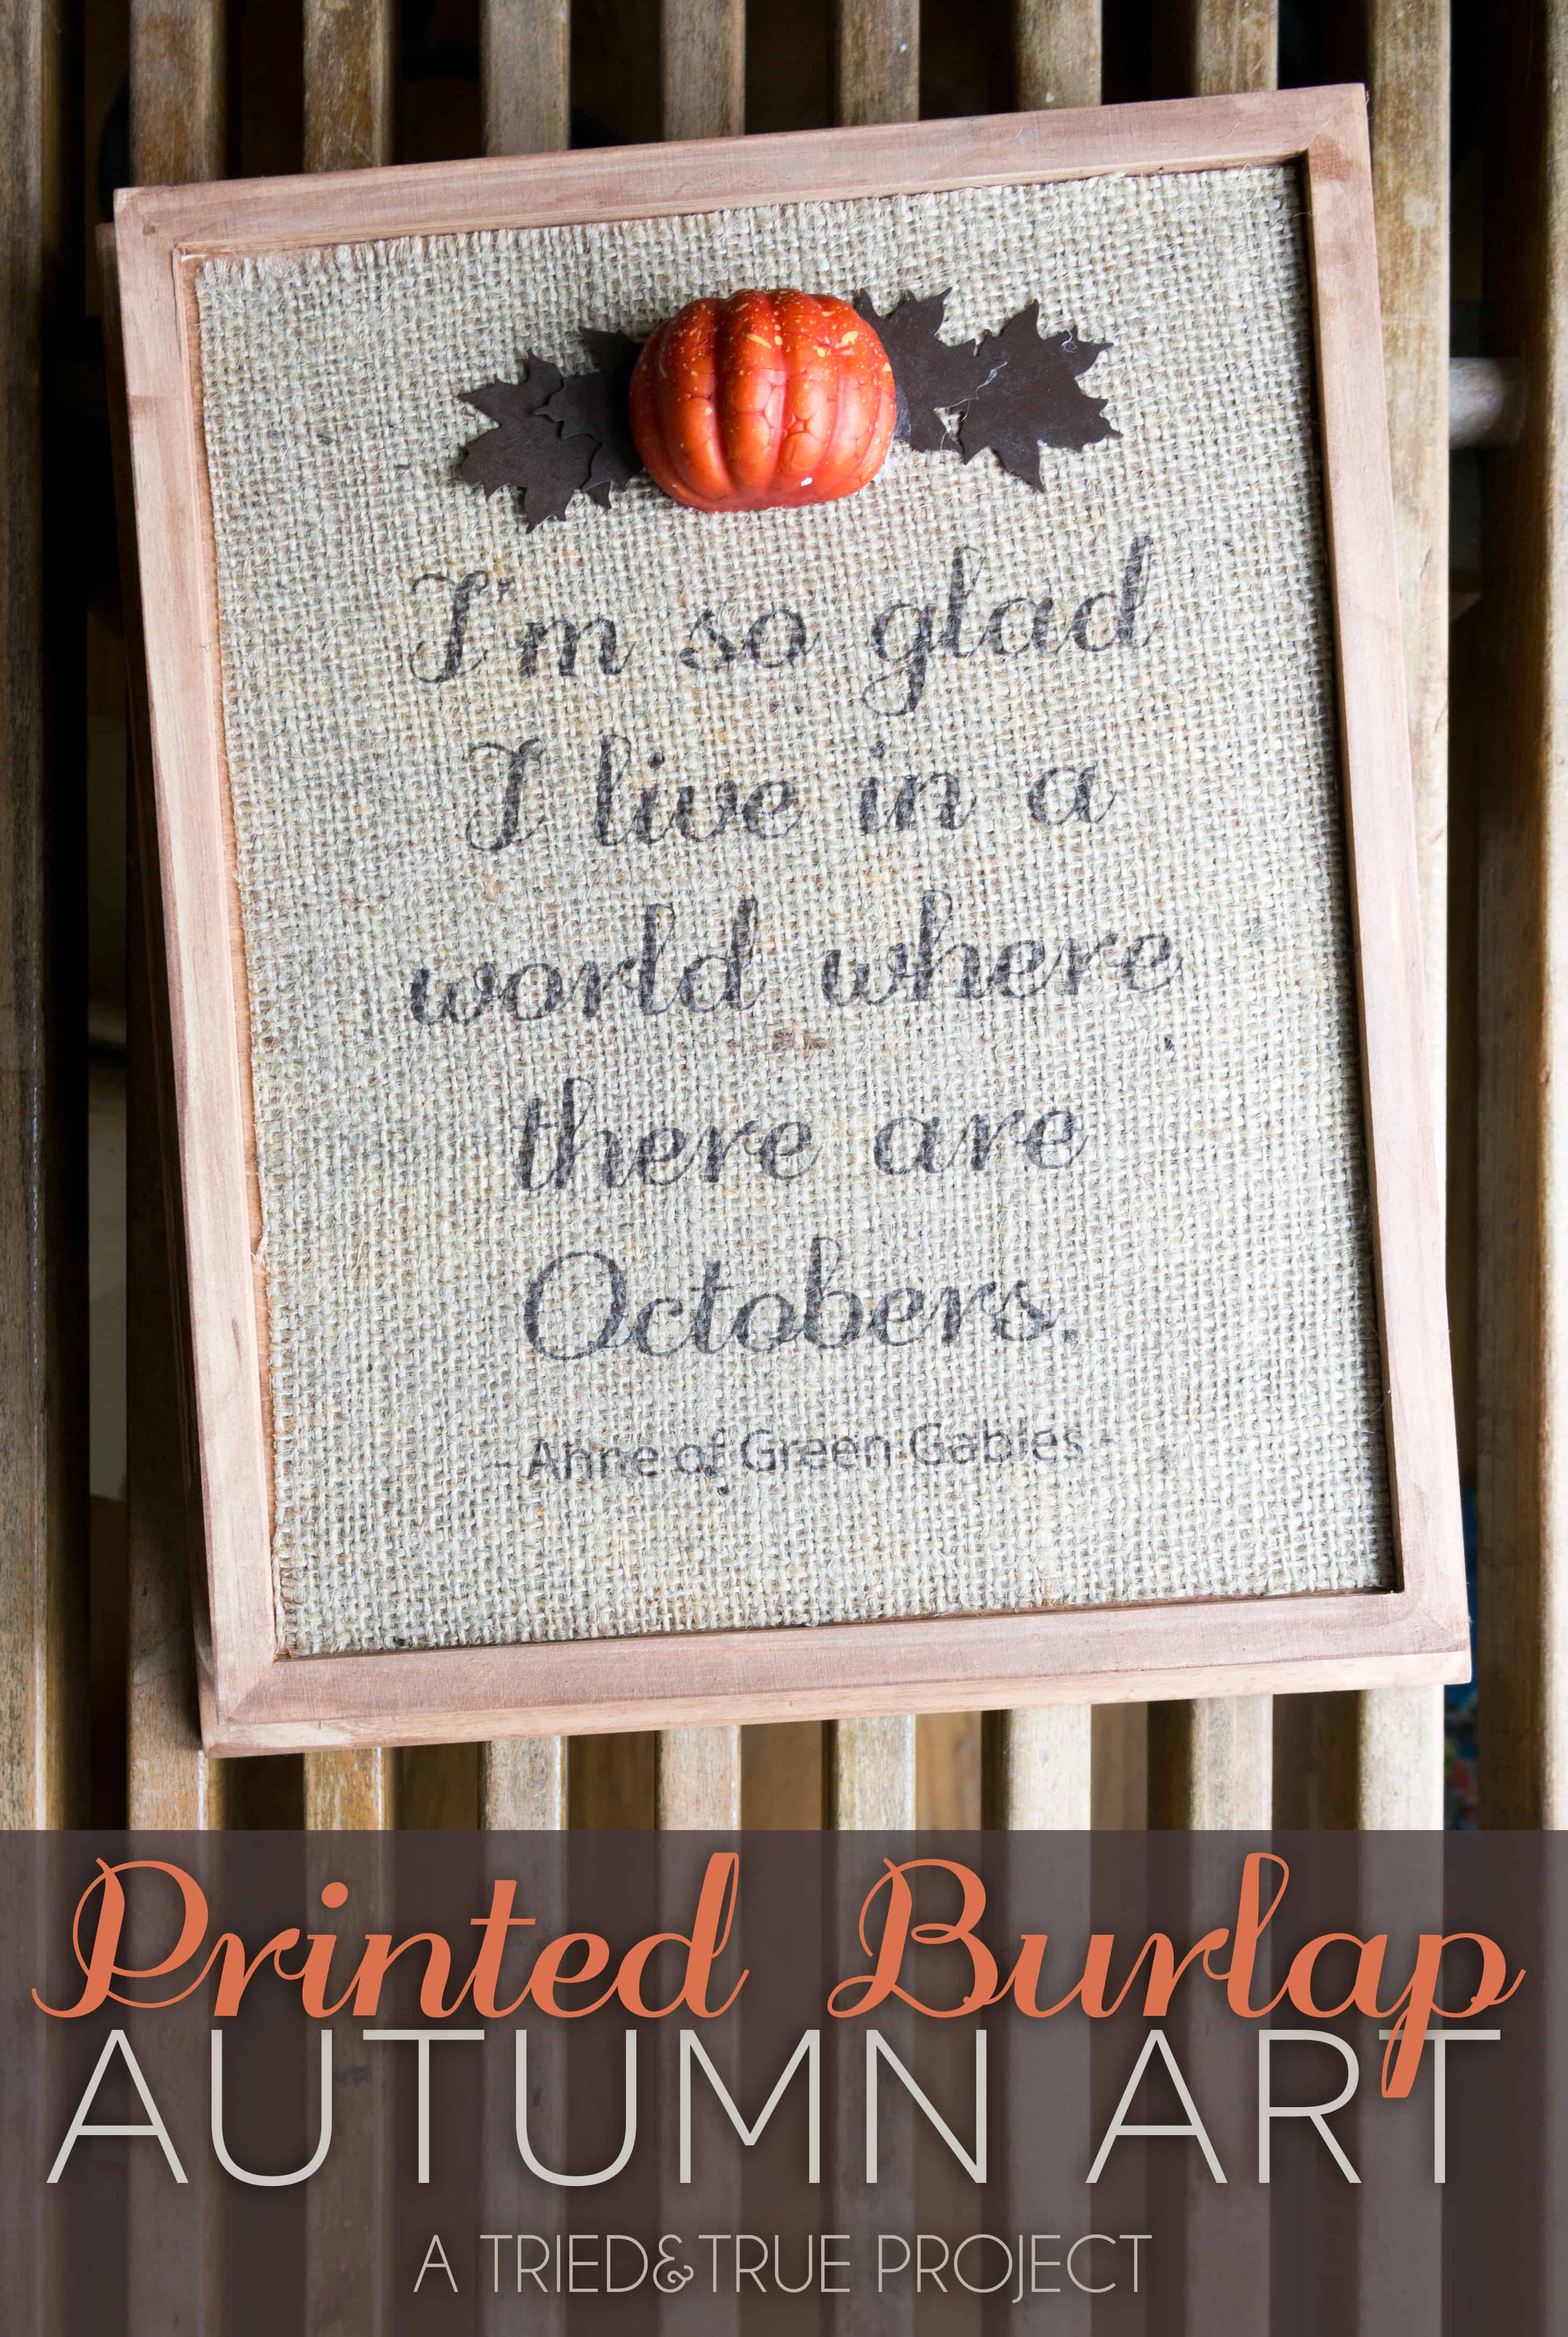 Make your own DIY Autumn Burlap Sign with this easy tutorial! Includes Ann of Green Gables quote free printable.